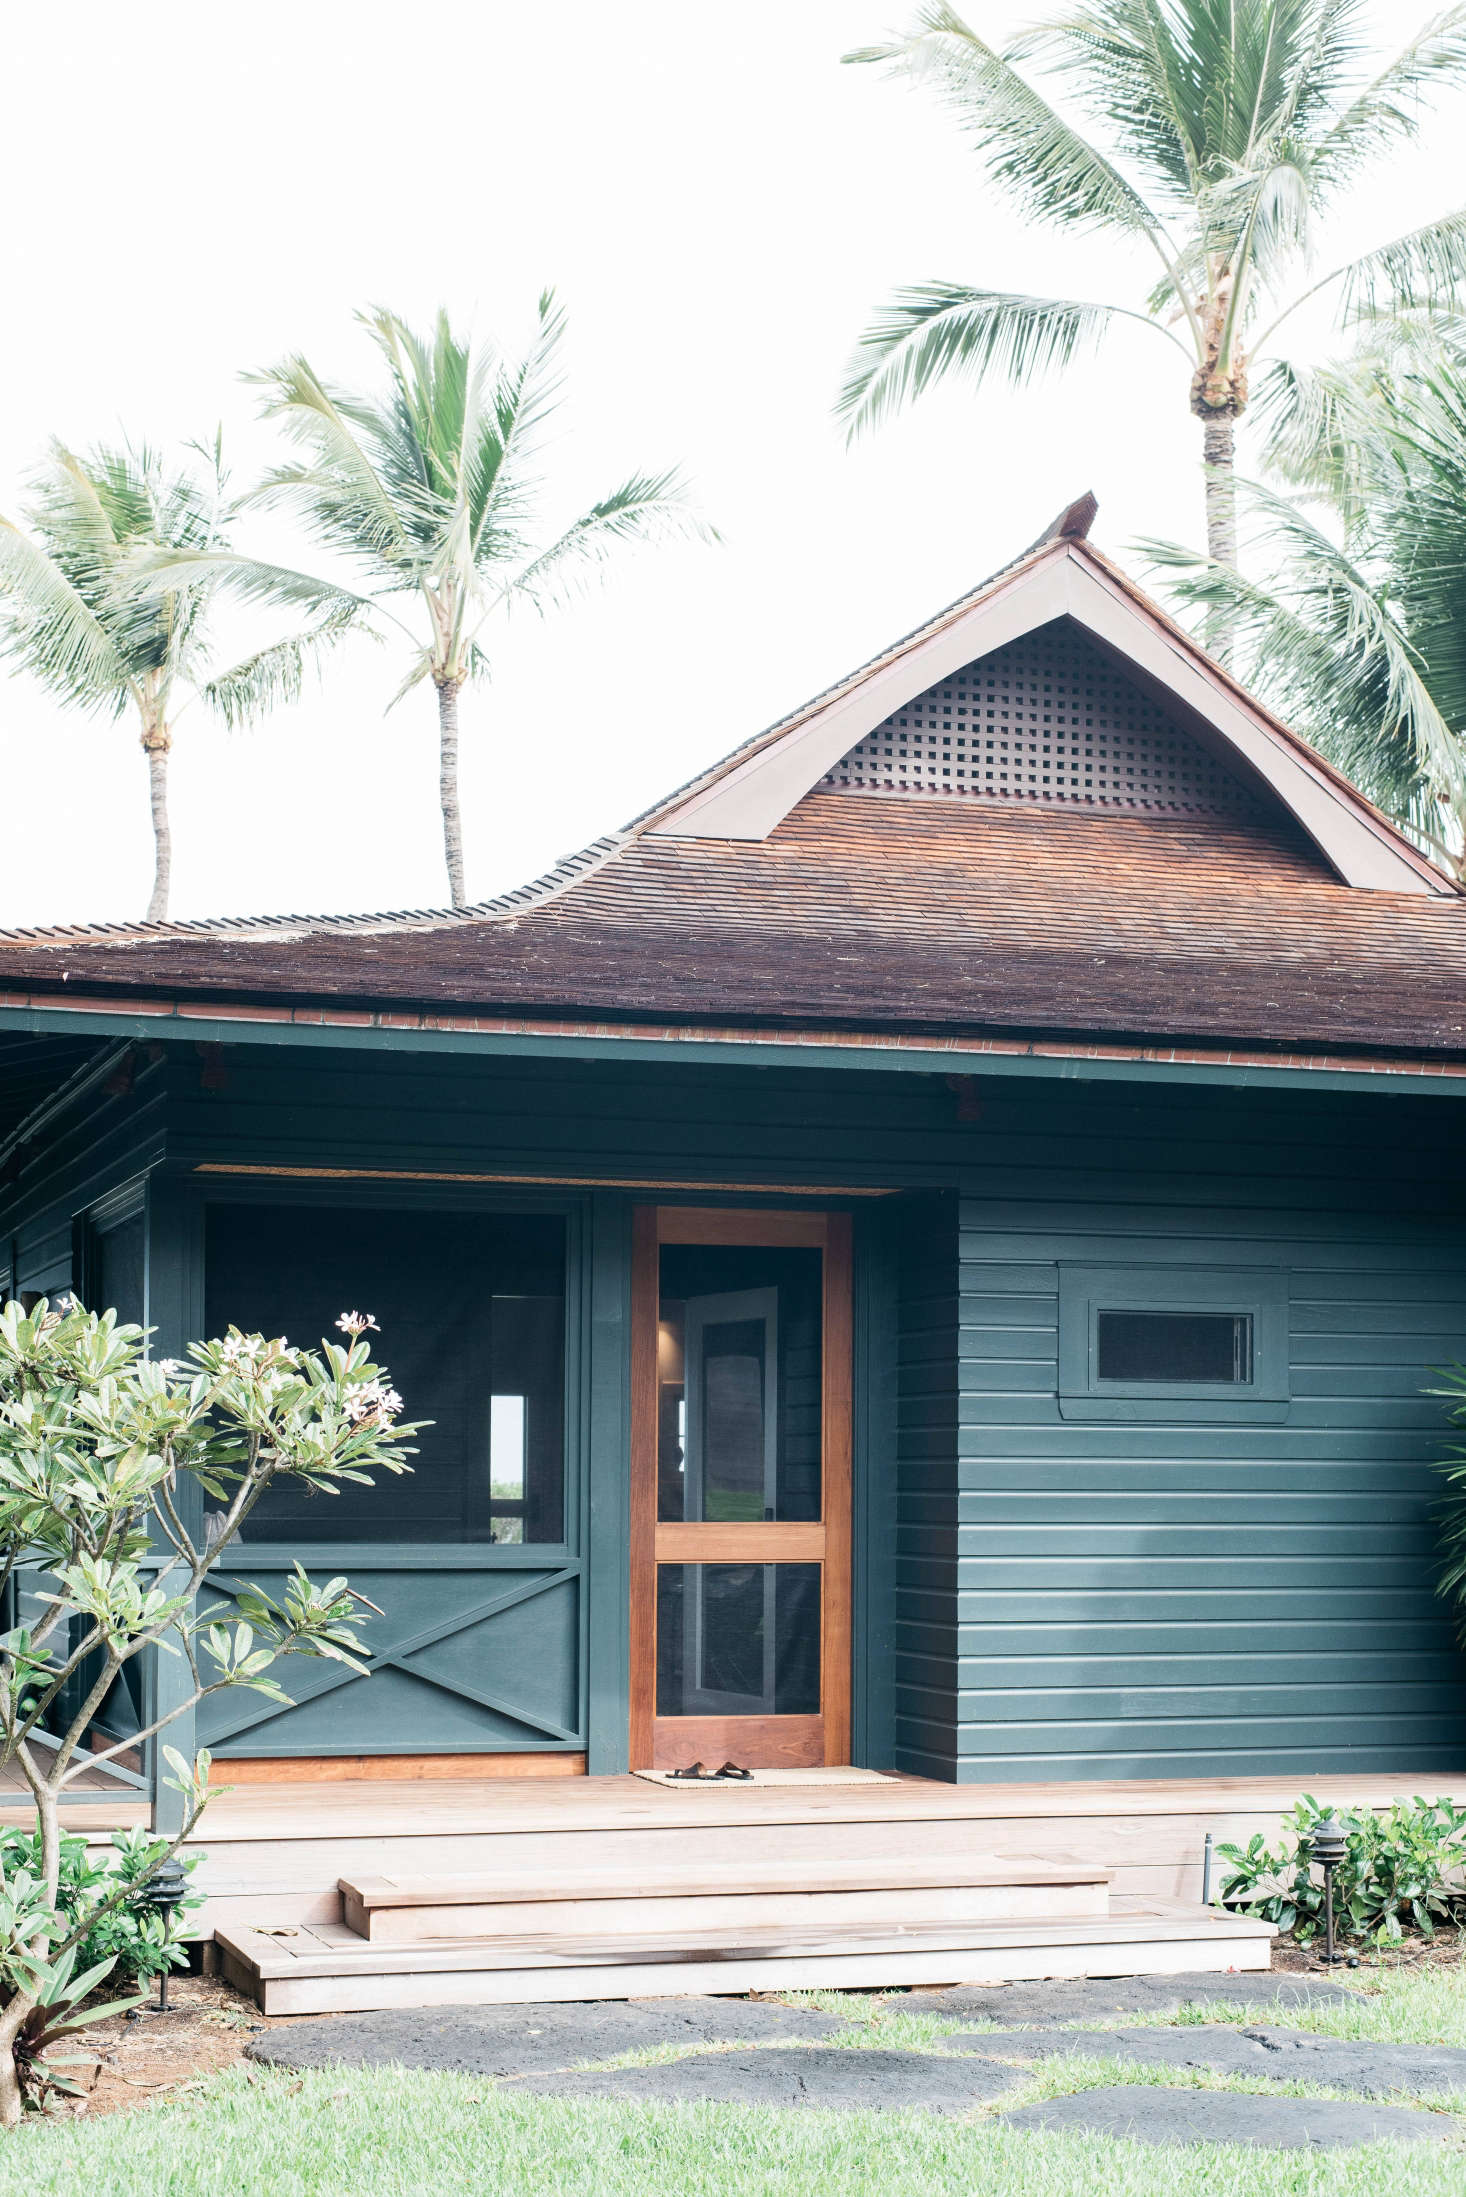 A a traditional plantation cottage, recently restored to its laid-back Hawaiian charm by Brooklyn-based architect Roberto Sosa, has a screened porch with a mahogany door. Photograph by Kate Holstein, from Vacation Rental: Maui Beach Cottage with a Tropical Garden.